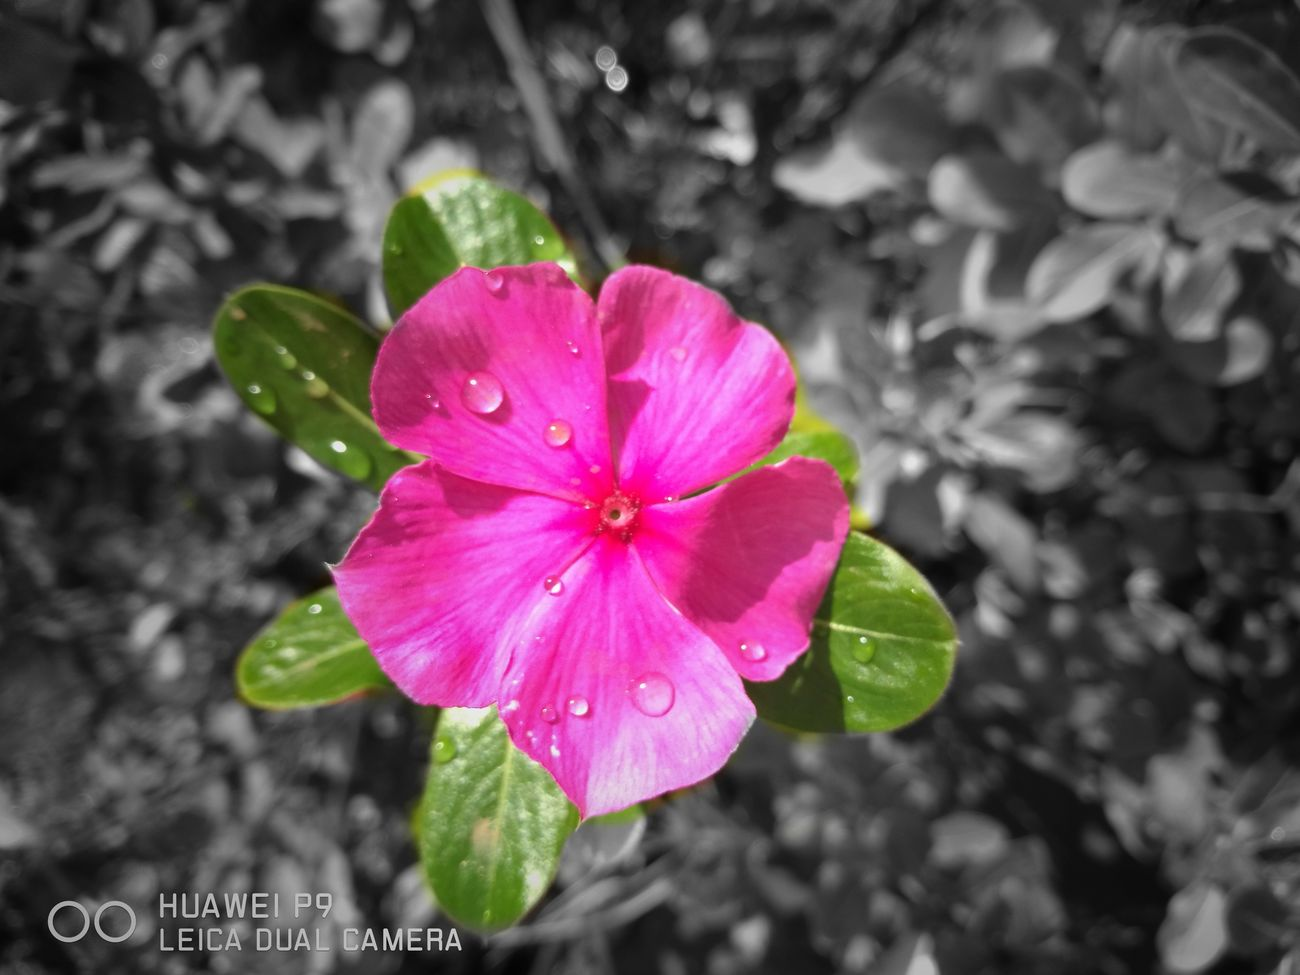 Wet Pink Color Nature Periwinkle Flower Fragility Petal Freshness Beauty In Nature Growth Drop Water Plant Flower Head Focus On Foreground Close-up Leaf Blooming Green Color No People After The Rain After Rain Nature Rainy Days Raindrops